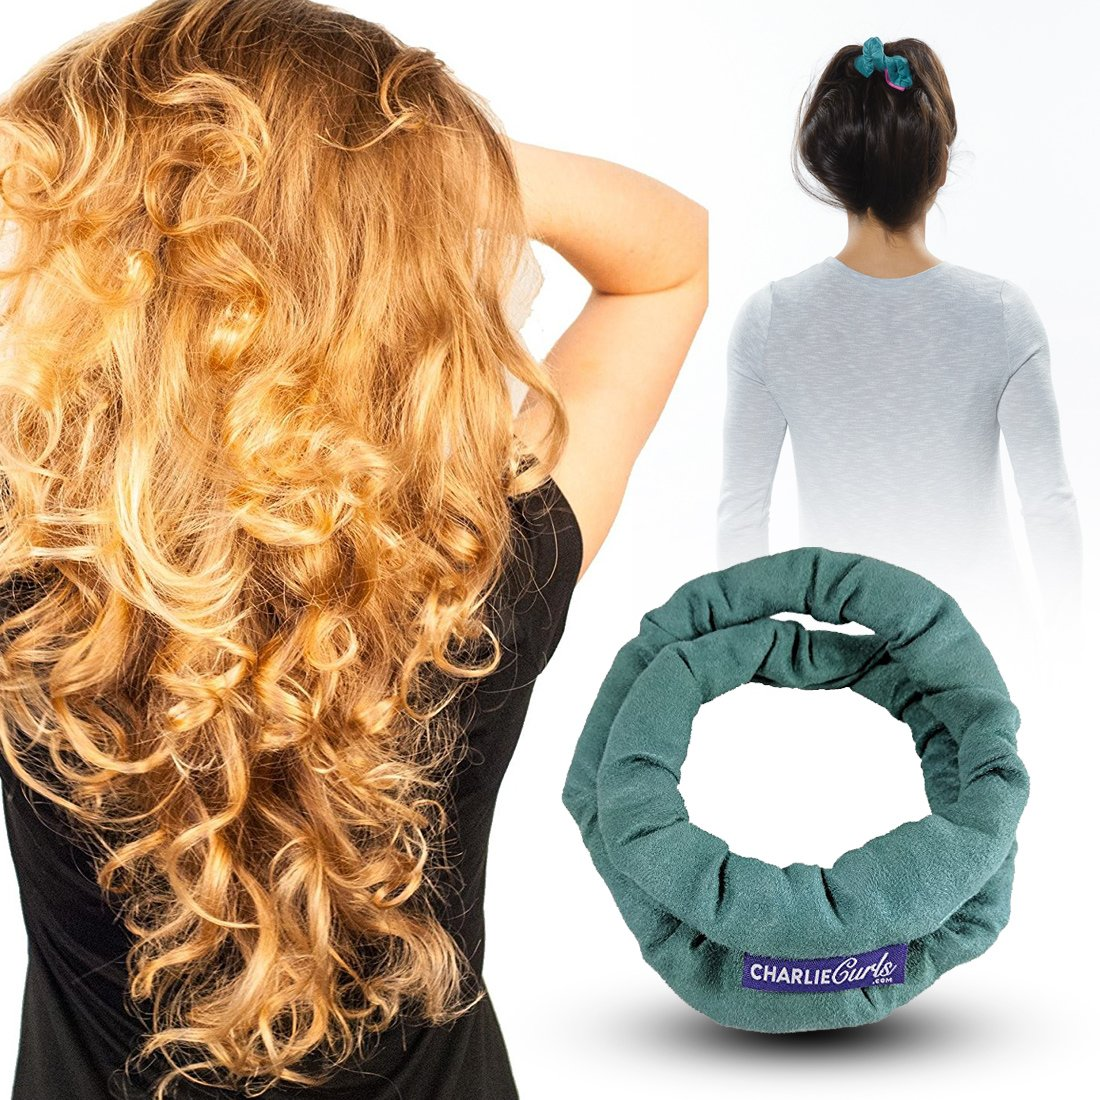 CharlieCurls: On The Go, One-Piece, Easiest ever No Heat Hair Curler (Teal)